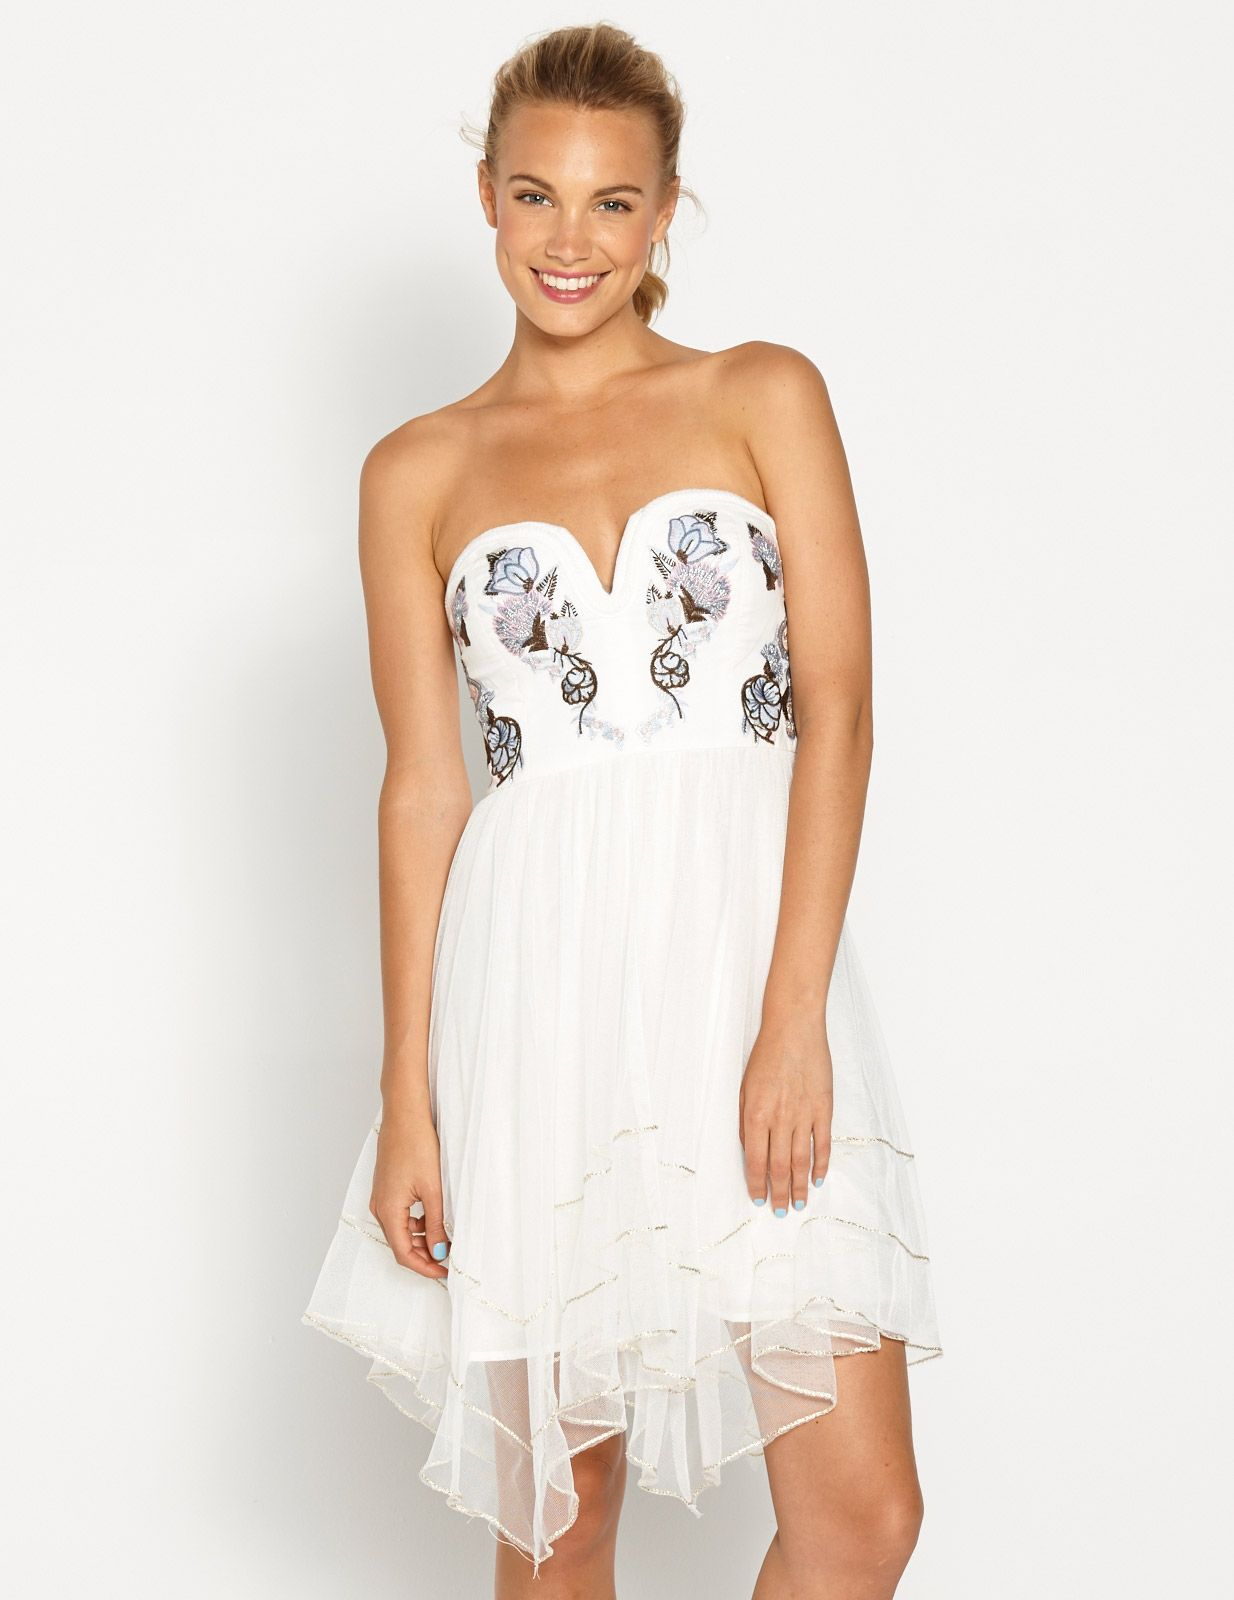 Heart Shaped Bust Featuring Embroidery Detail With An